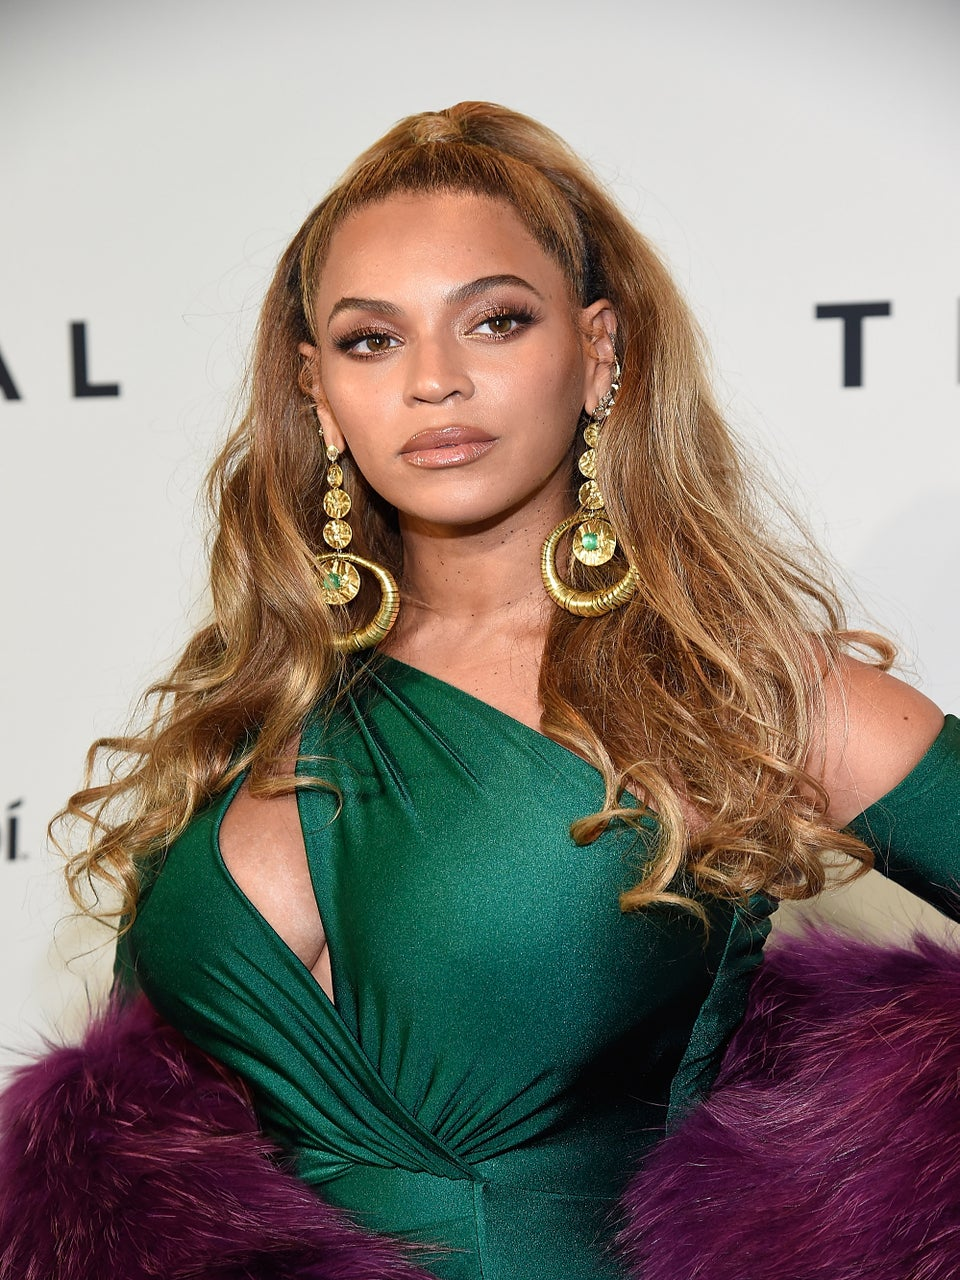 Beyoncé Slays Like The Queen She Is At Tidal X Brooklyn Benefit Concert